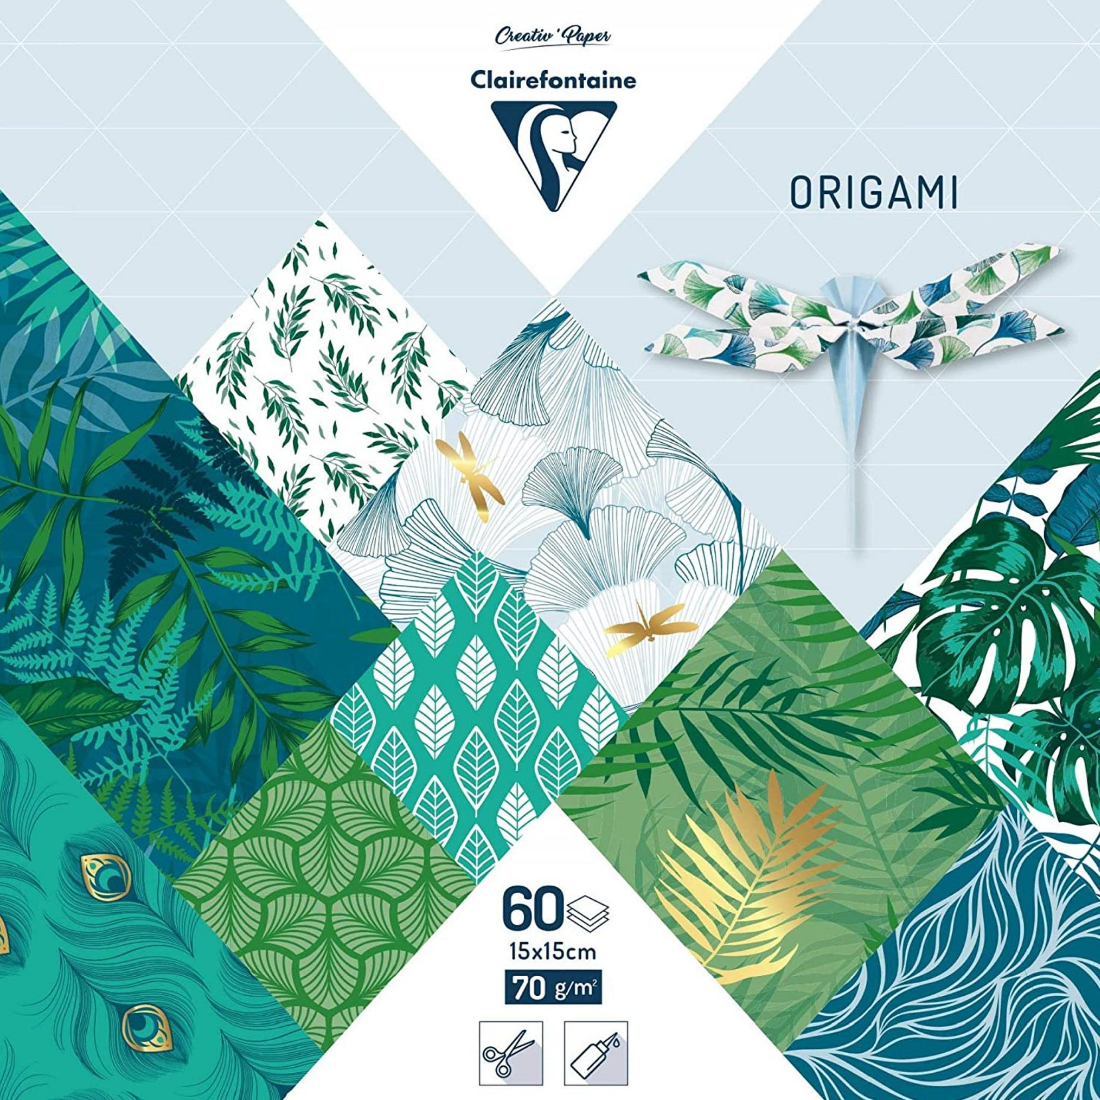 Papel Origami Green Chic clairefontaine